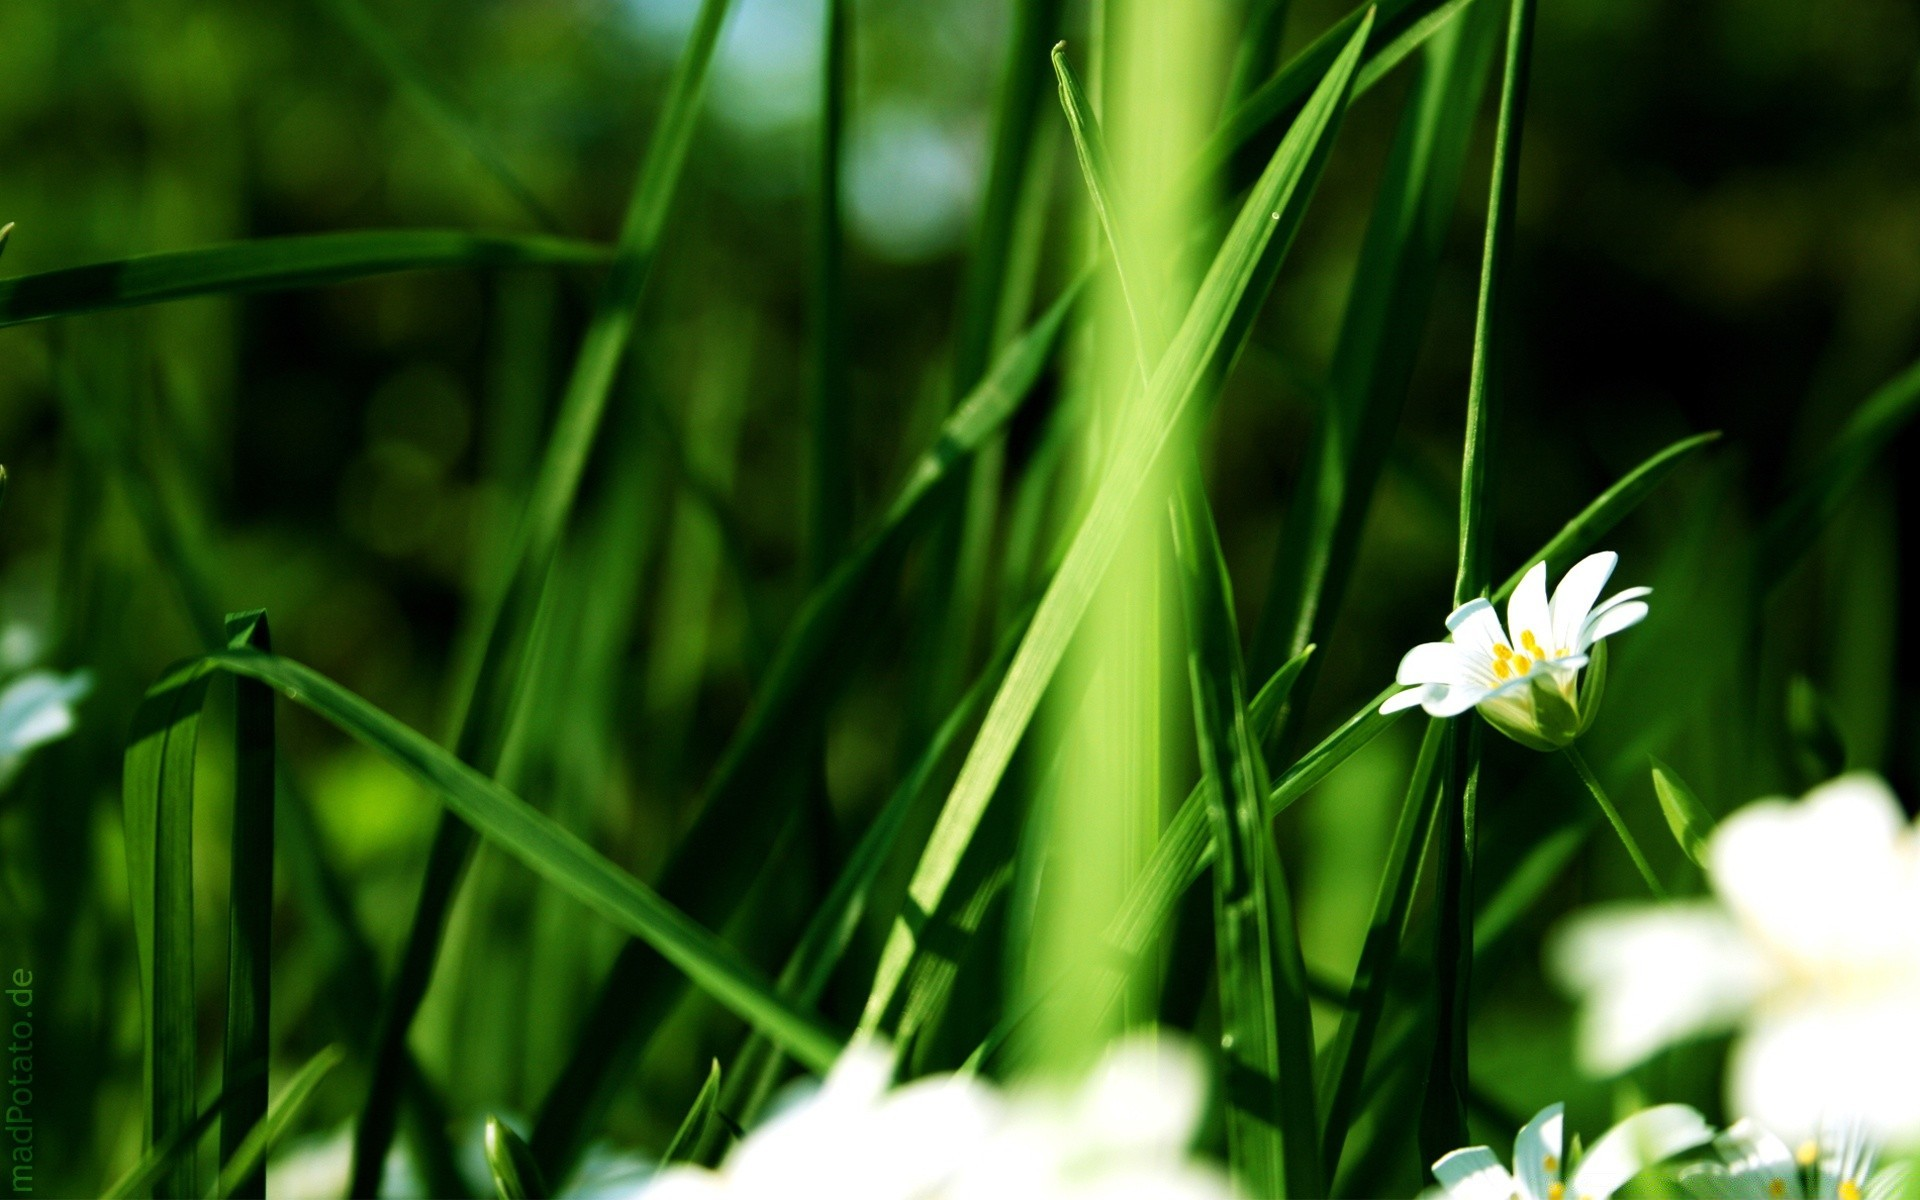 Grass And White Flowers Android Wallpapers For Free